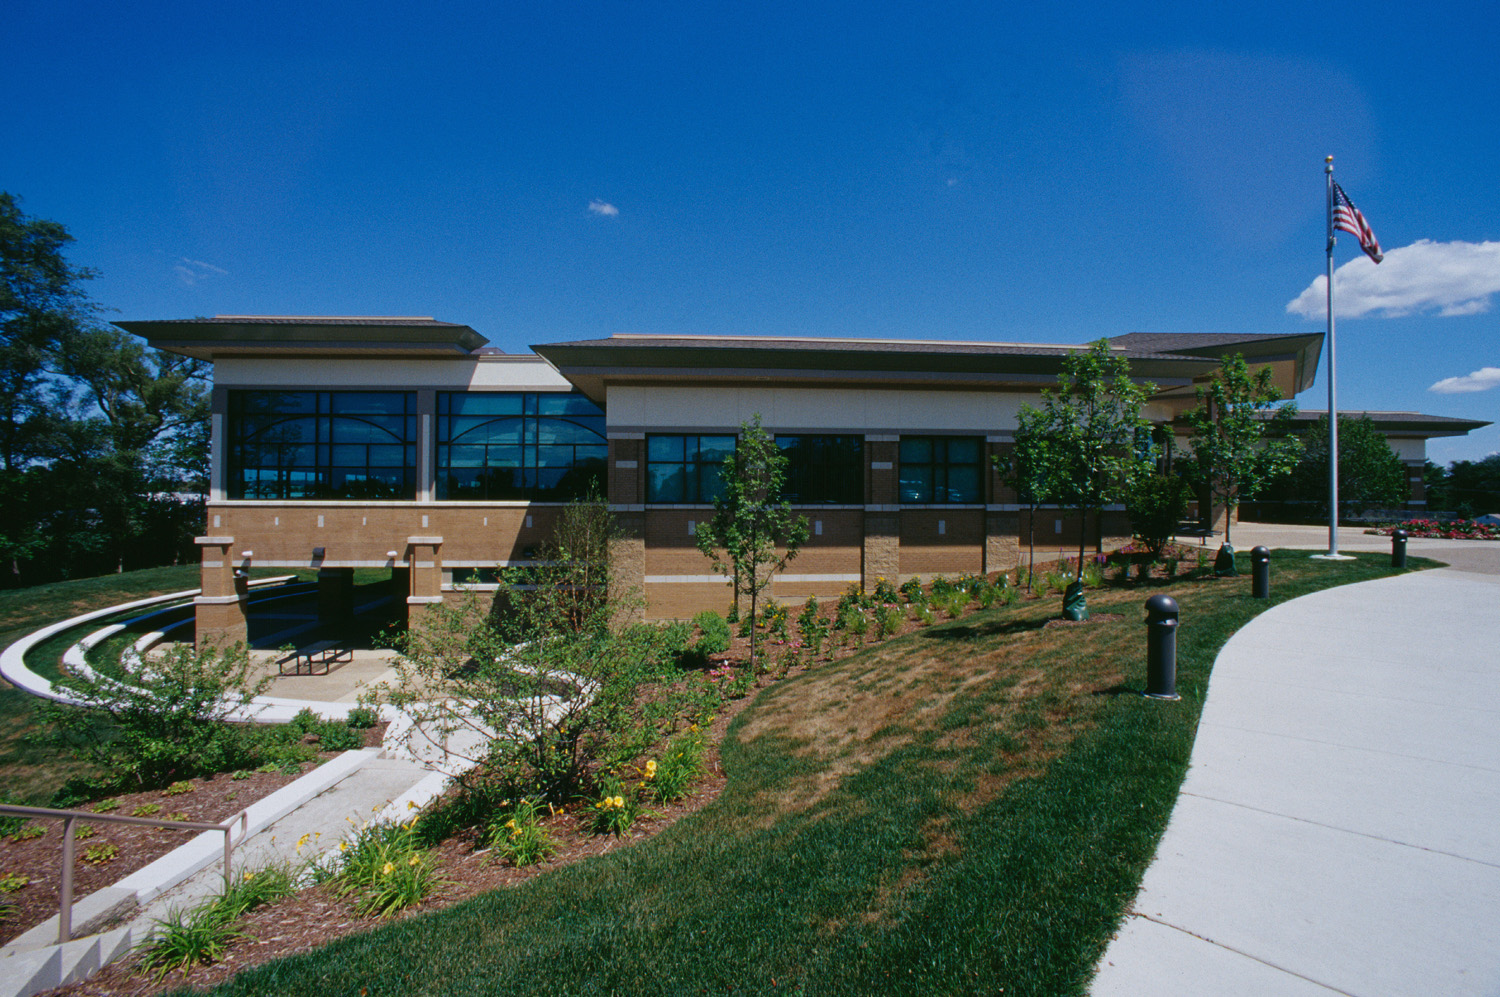 2000-046-26 Downers Grove Rec Center ext side.jpg